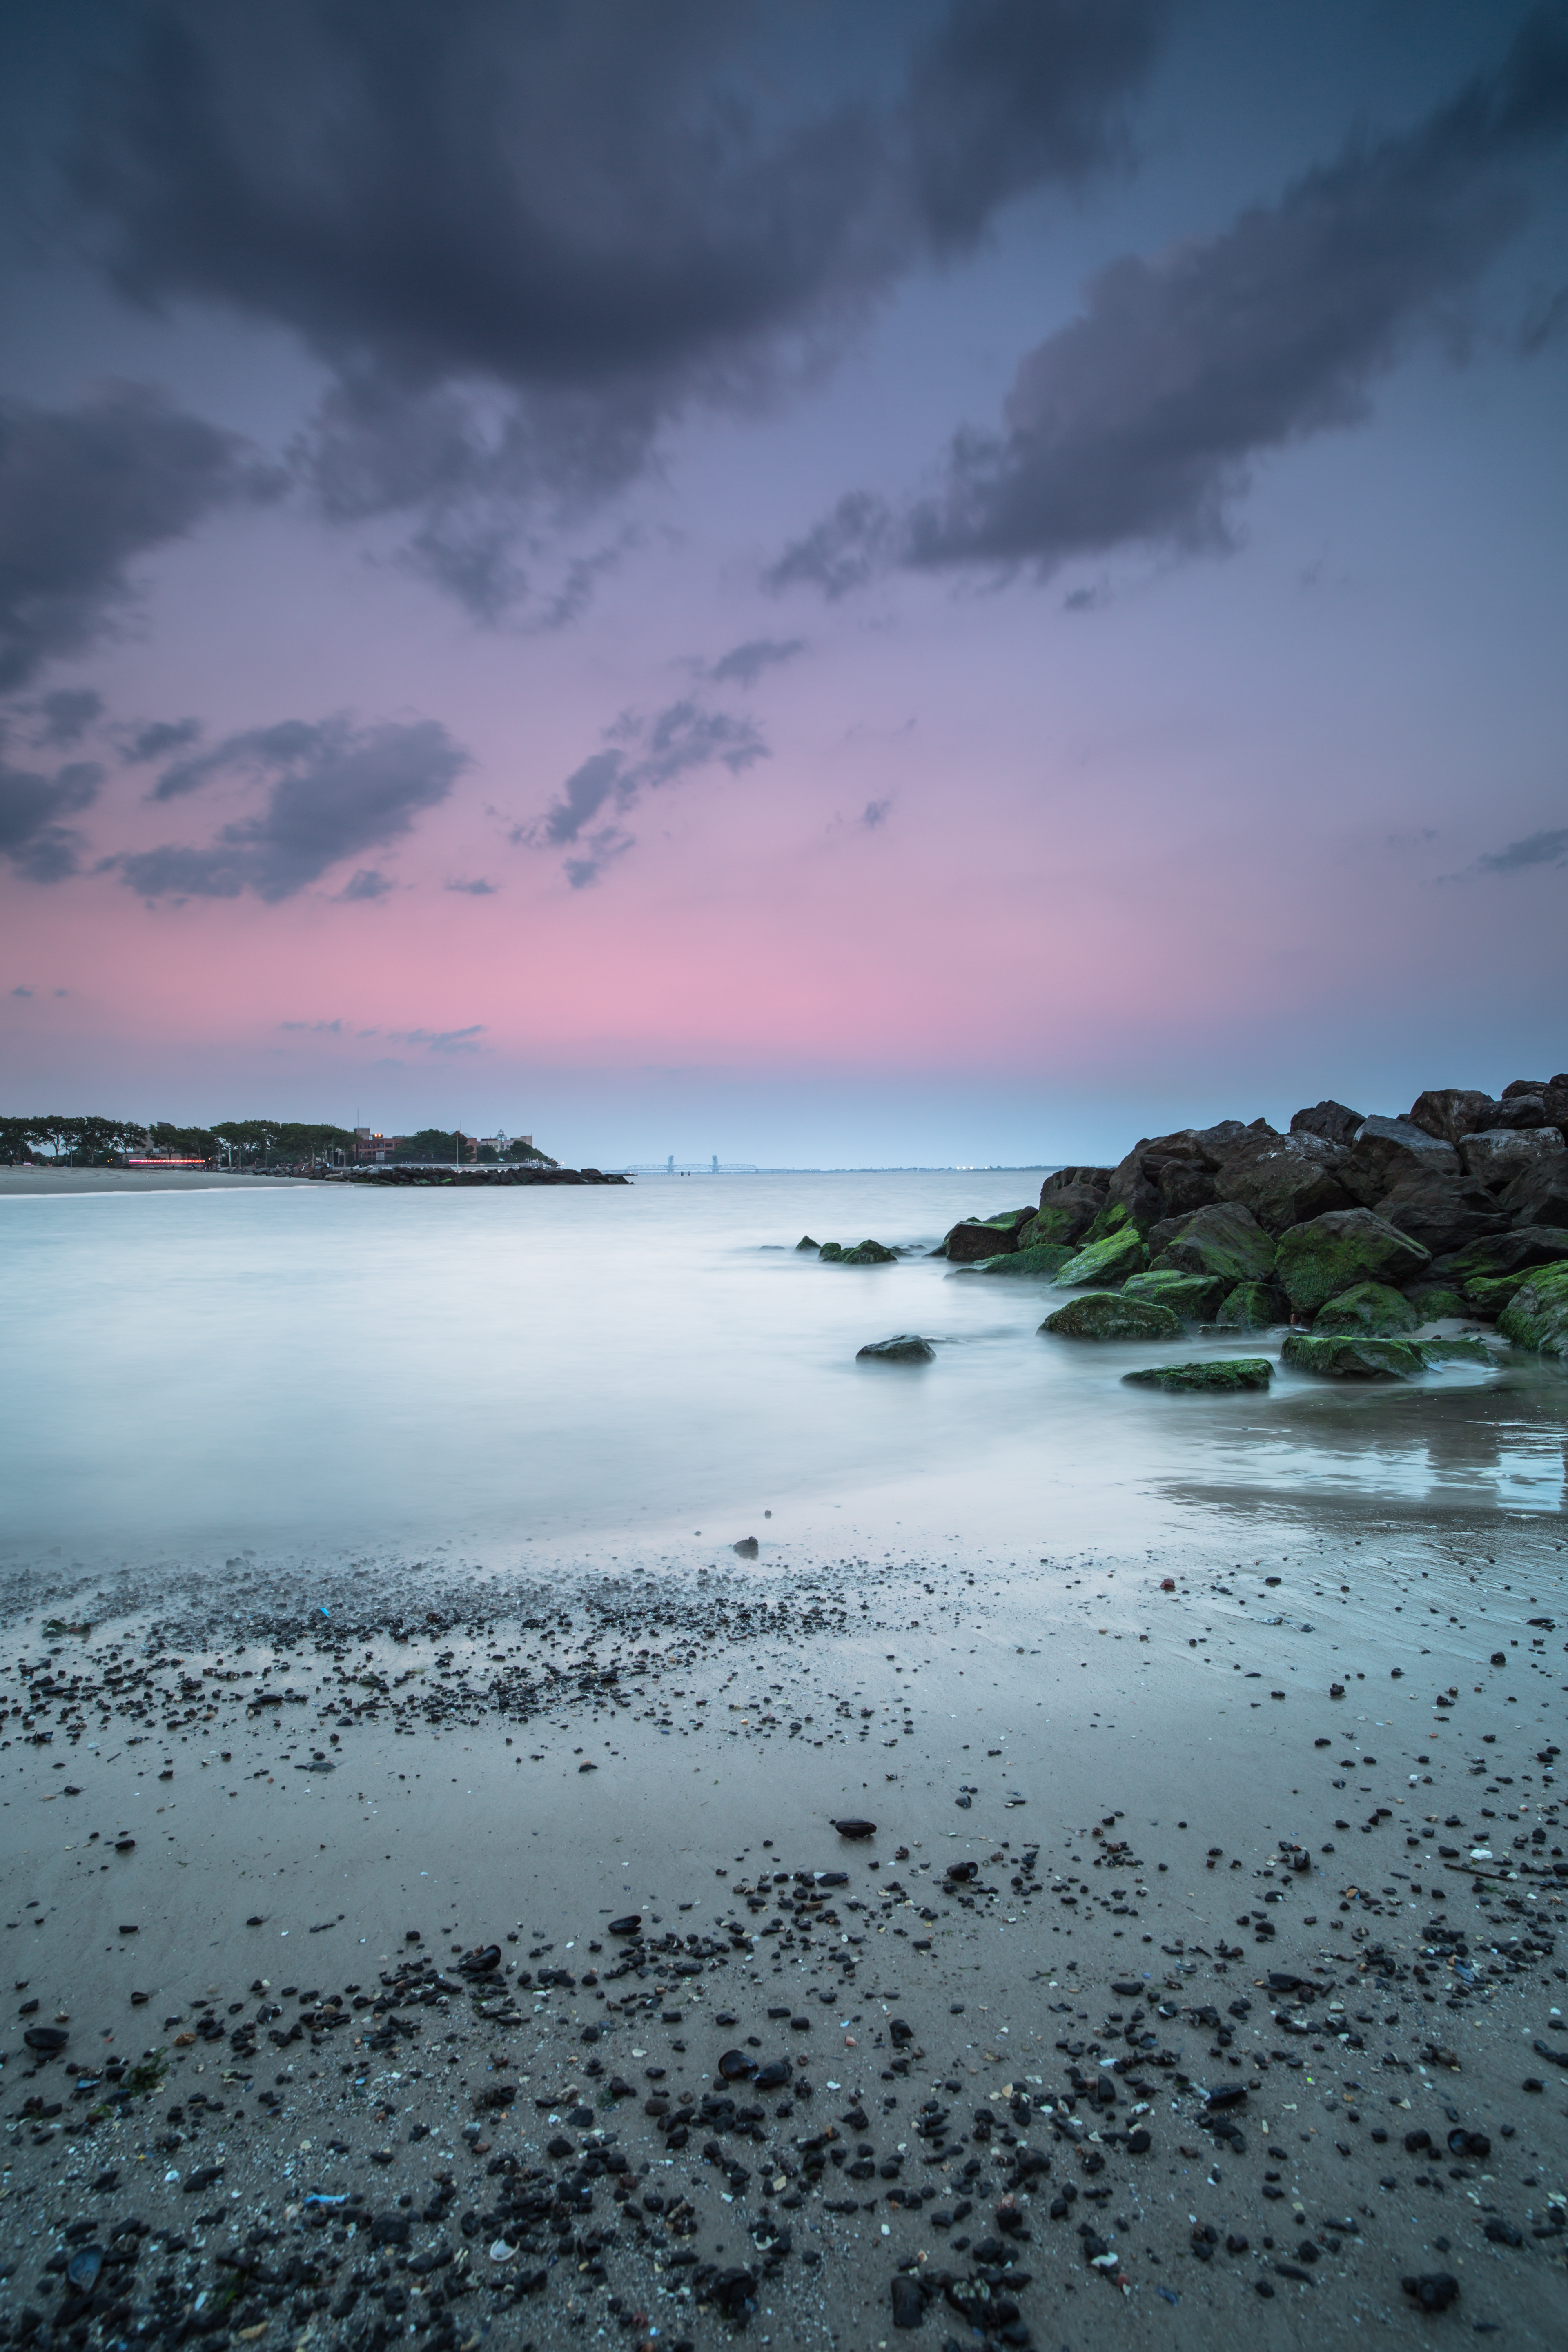 Sunset on the beach with rocks and mussels example image 1